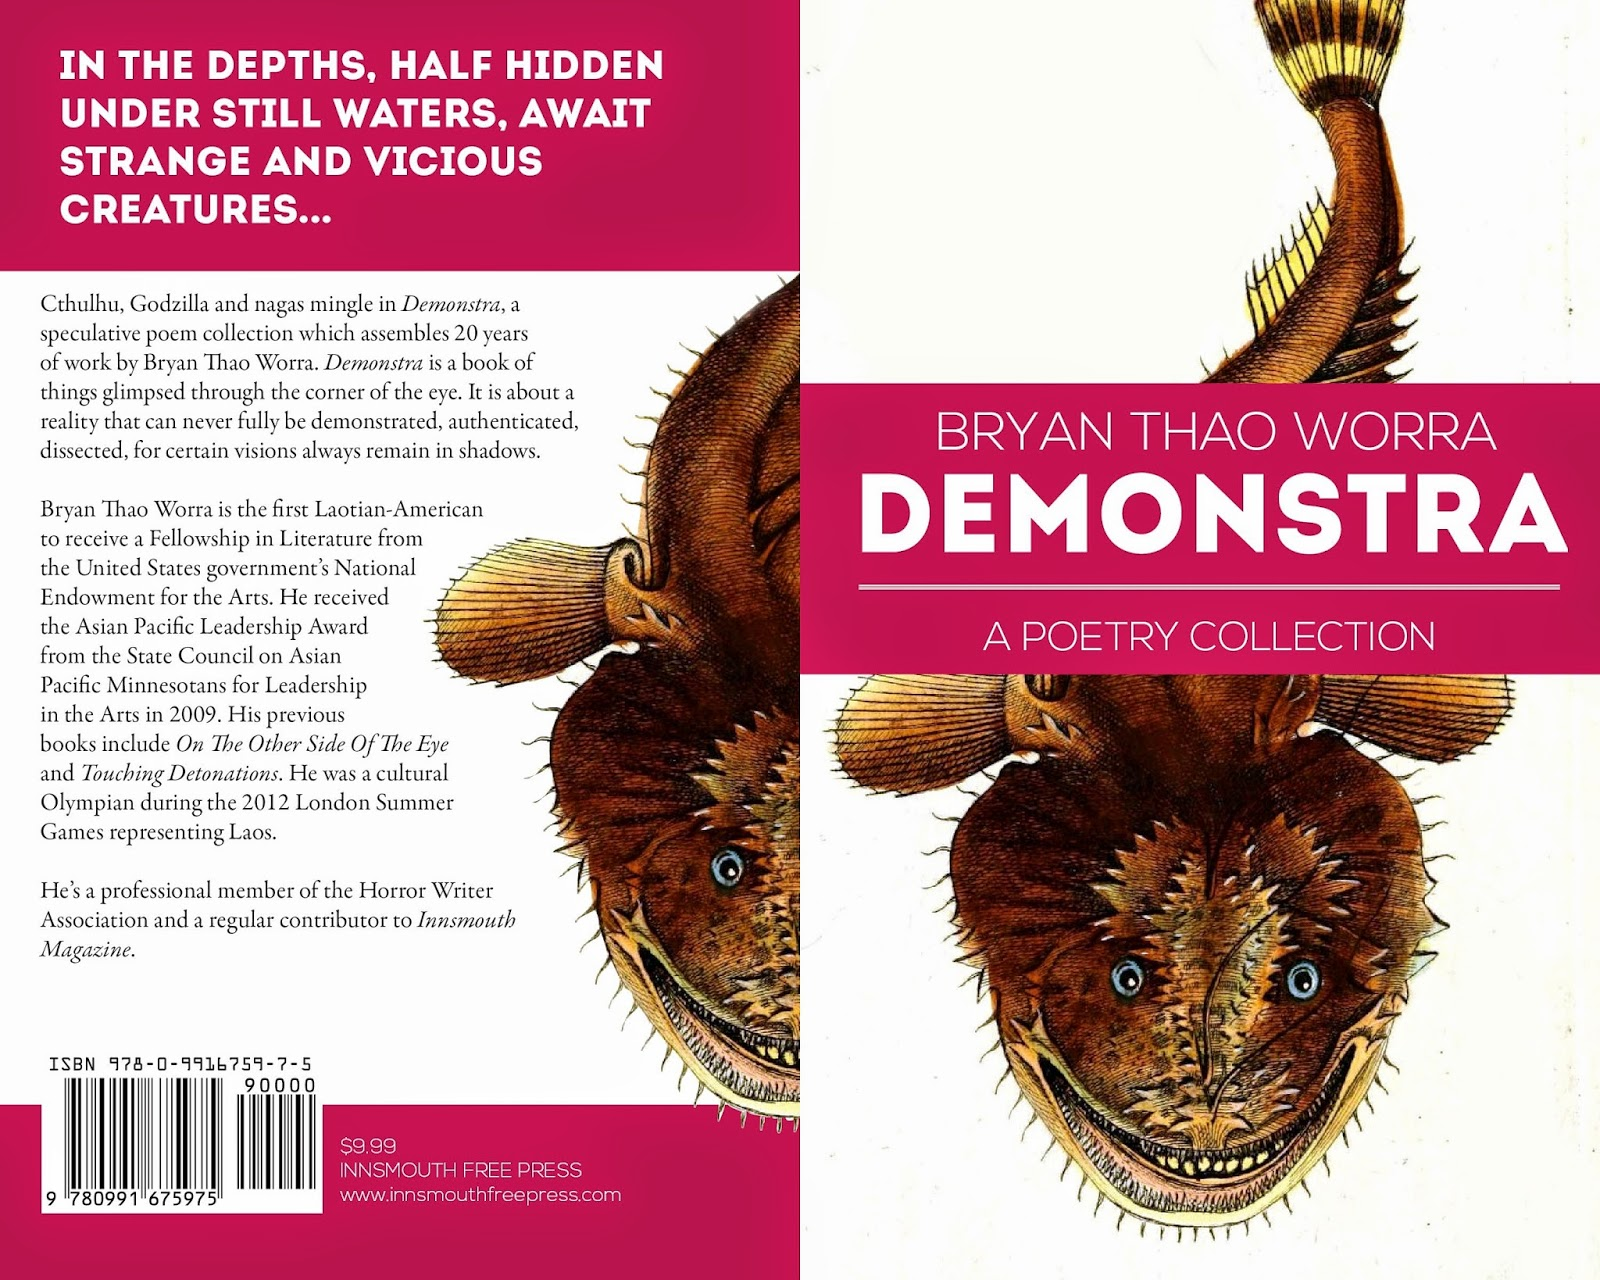 Lao poetry book - Demonstra by Bryan Thao Worra.  Illustrated by Vonguane Manivong.